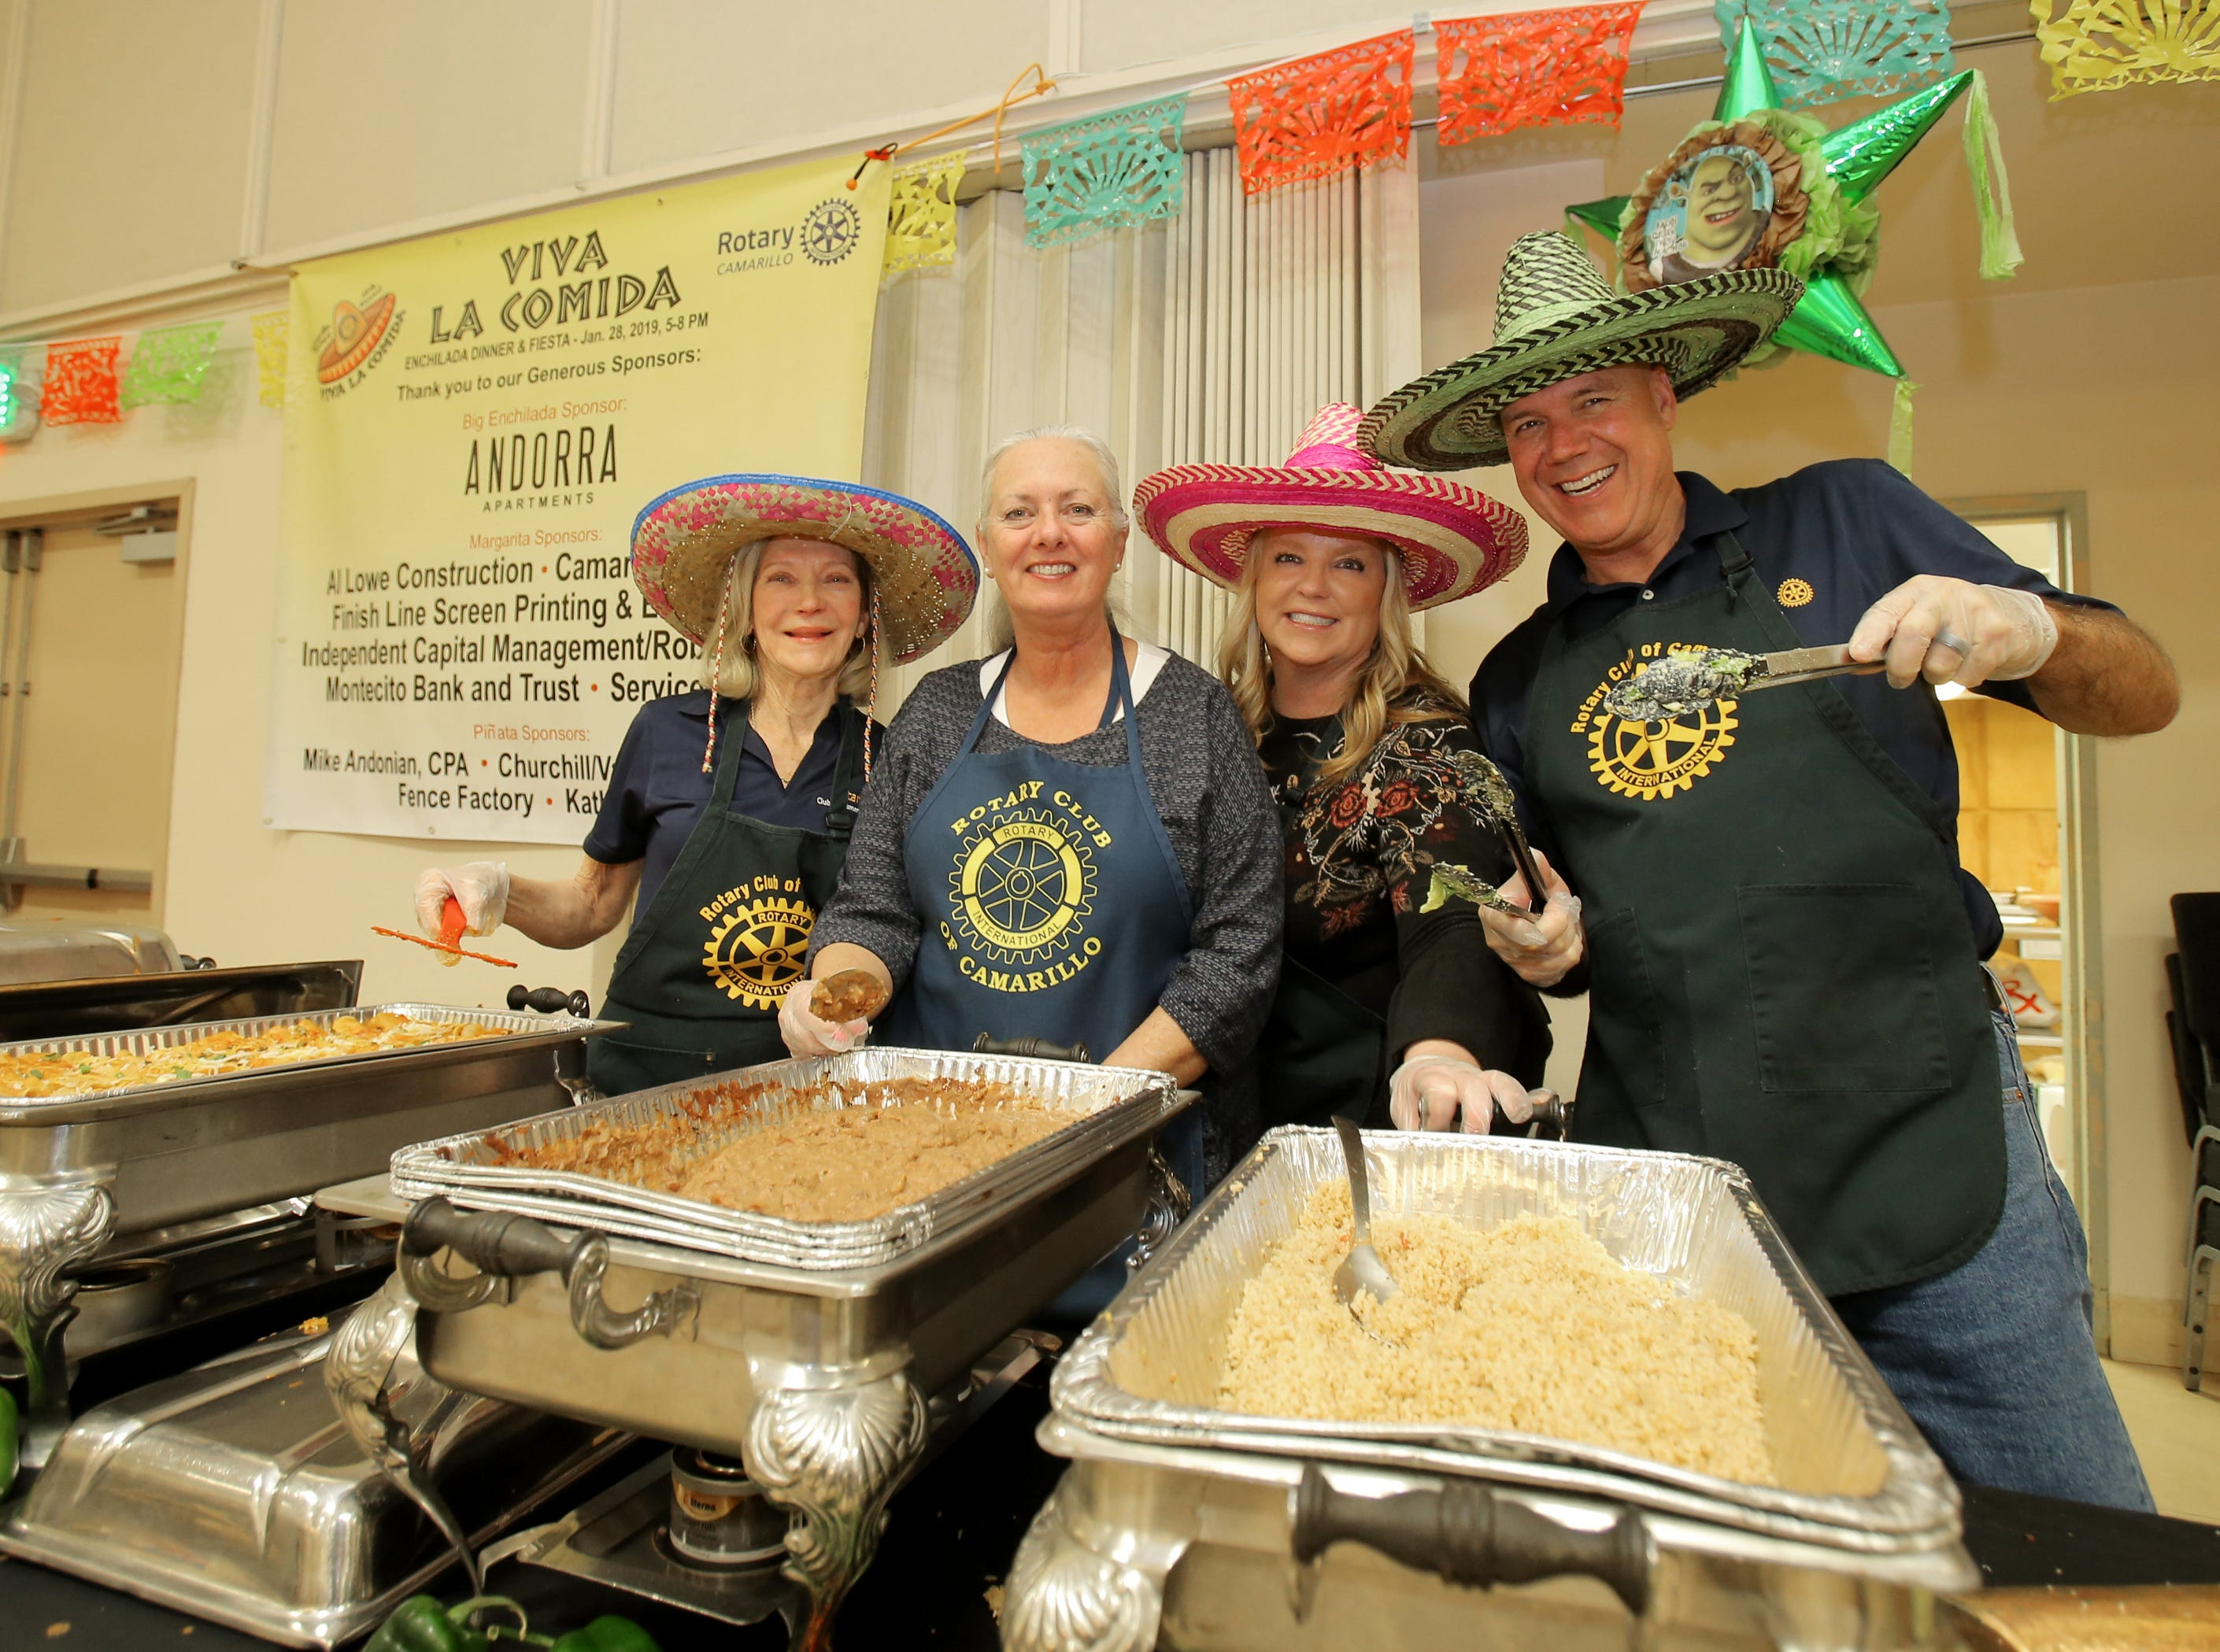 Rotary Club of Camarillo members Georgie Regnier, from left, Pat McCollum, Carrie Hughes and Dave Drumright work at one of the food stations during the Viva la Comida Dinner and Fiesta fundraiser Monday at the Camarillo Community Center. All the money raised goes toward scholarships and local charities, included the Boys & Girls Club.